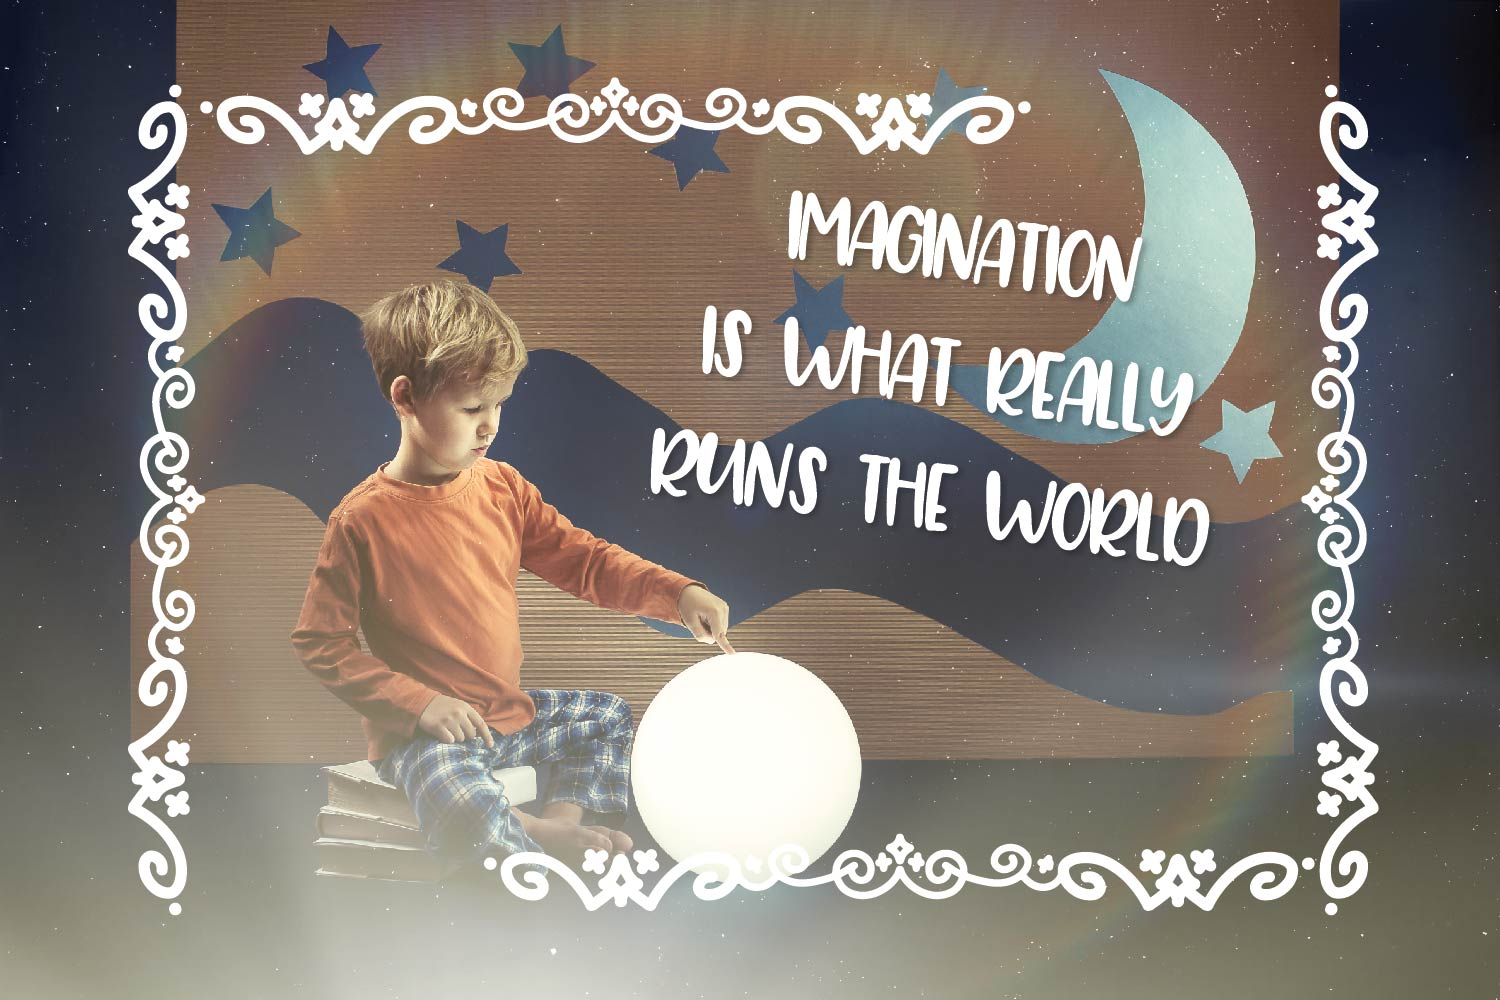 Storybook Banners - A Dingbat Font Full of Magical Borders example image 5